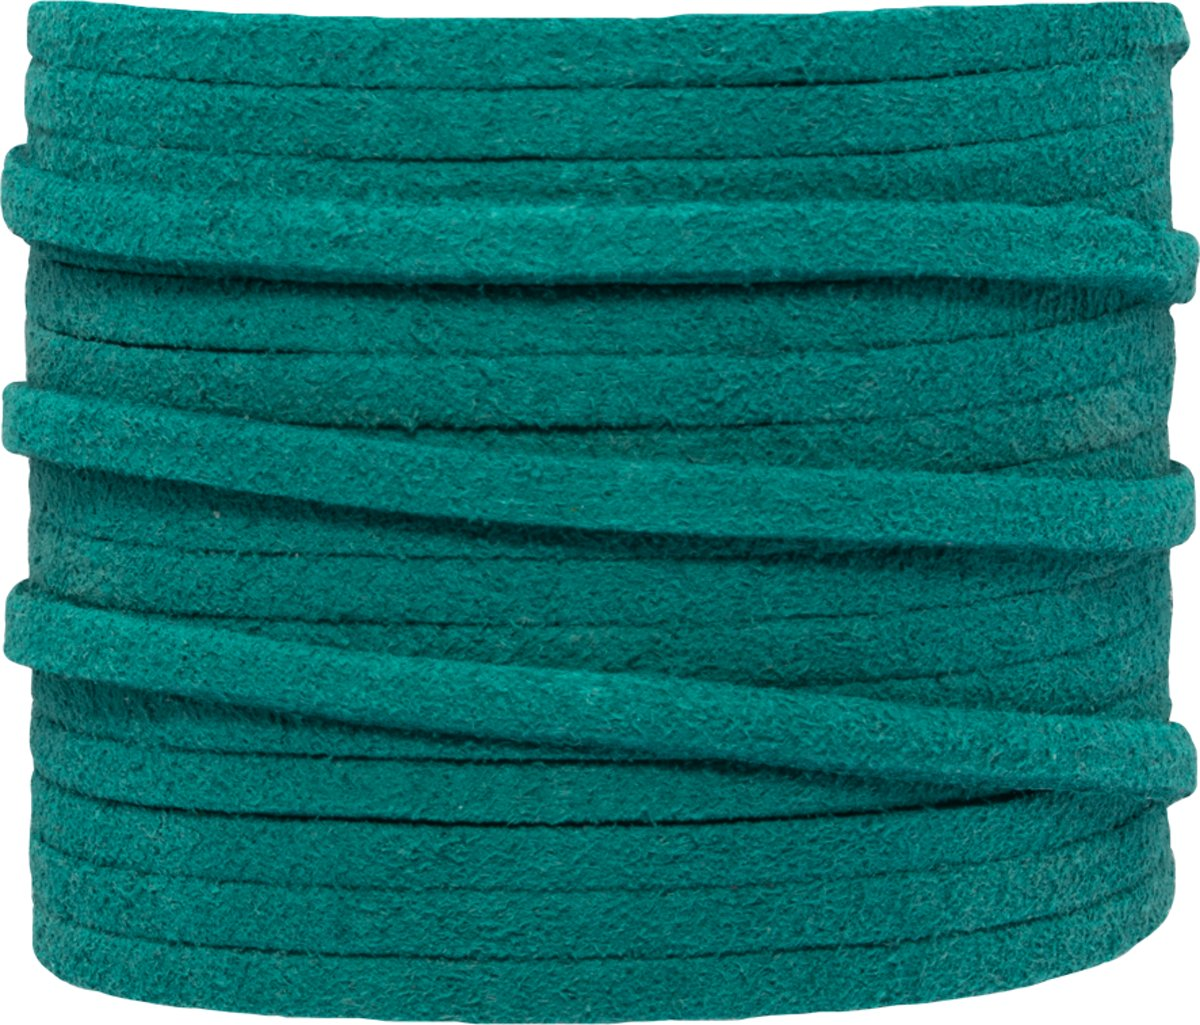 Faux Suede Veter (3 mm) Malachite (5 Meter)